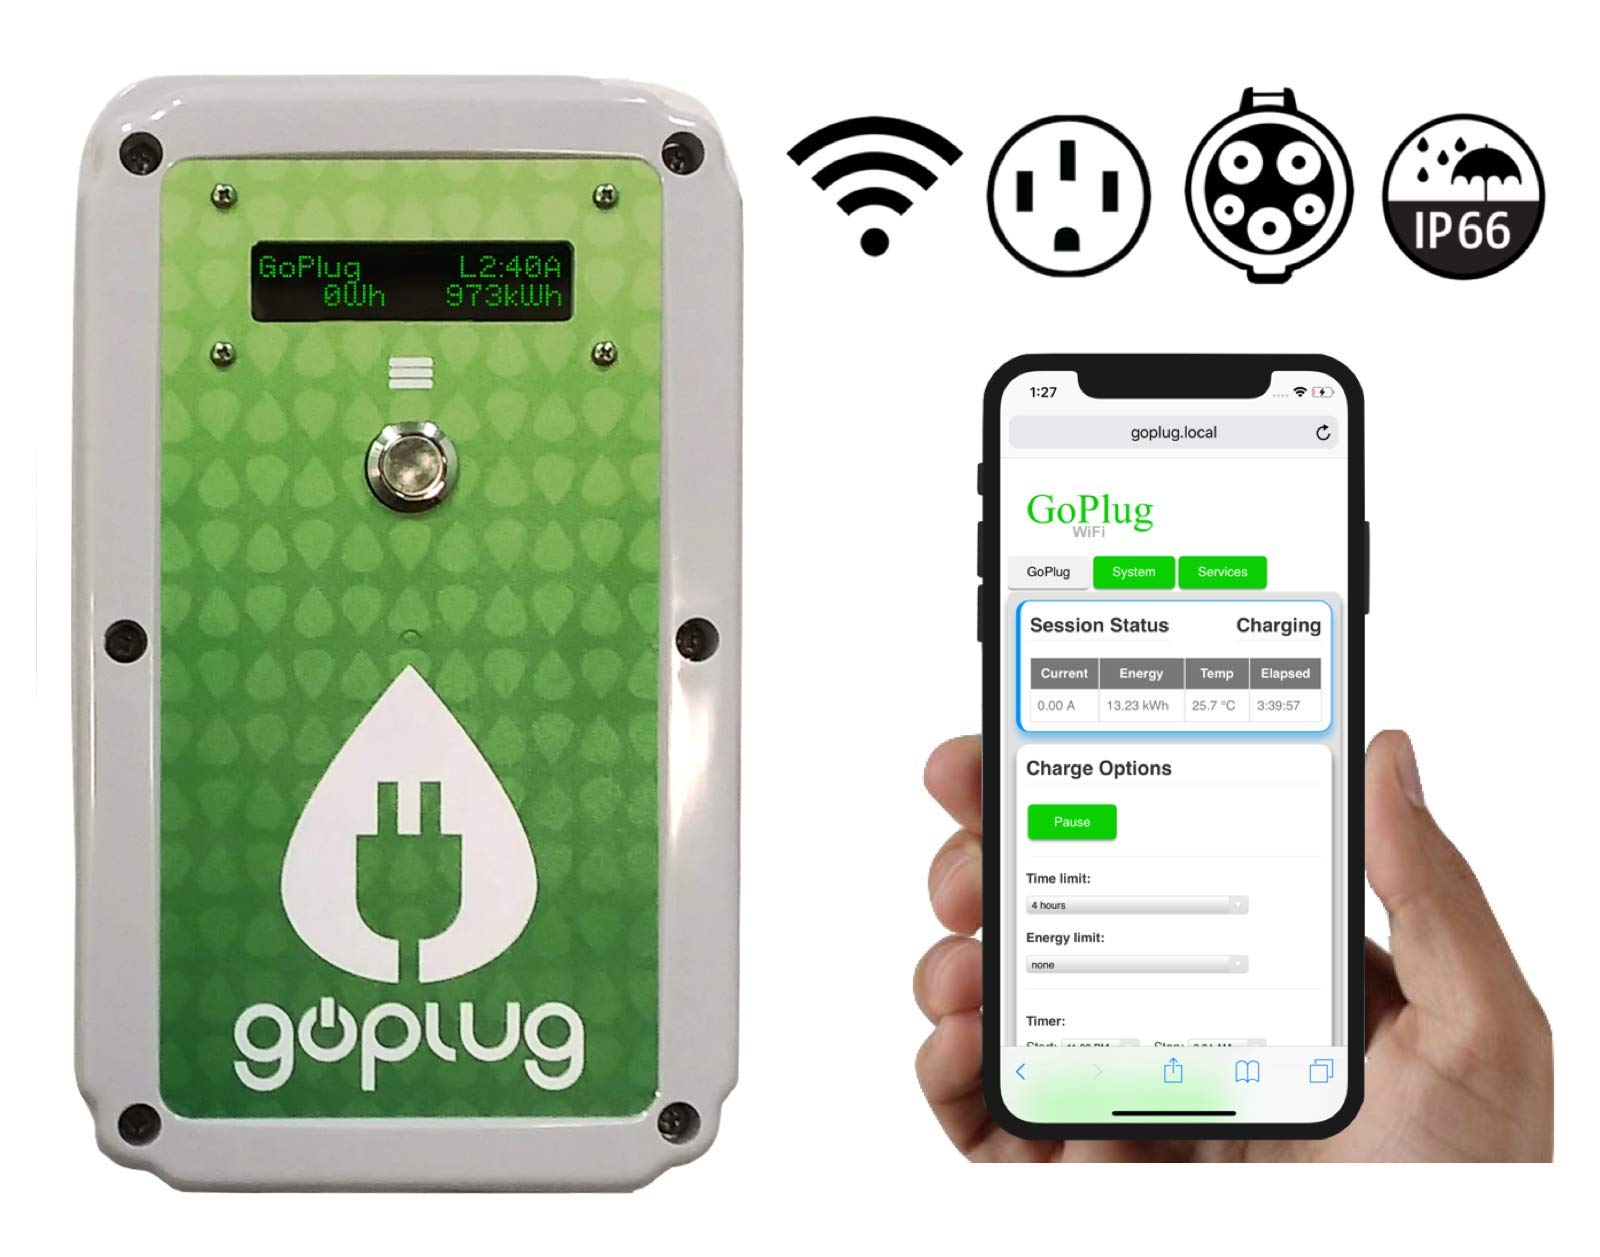 GoPlug Pro 40 Amp EV Charger: Compact Light Outdoor/Indoor Multi-Voltage 120-240V Level 2 Electric Vehicle Charging Station With Ultraflexible 25-Foot EVSE J1772 Cable, Color Display, WiFi, NEMA 14-50 by GoPlug EV Charger (Image #2)